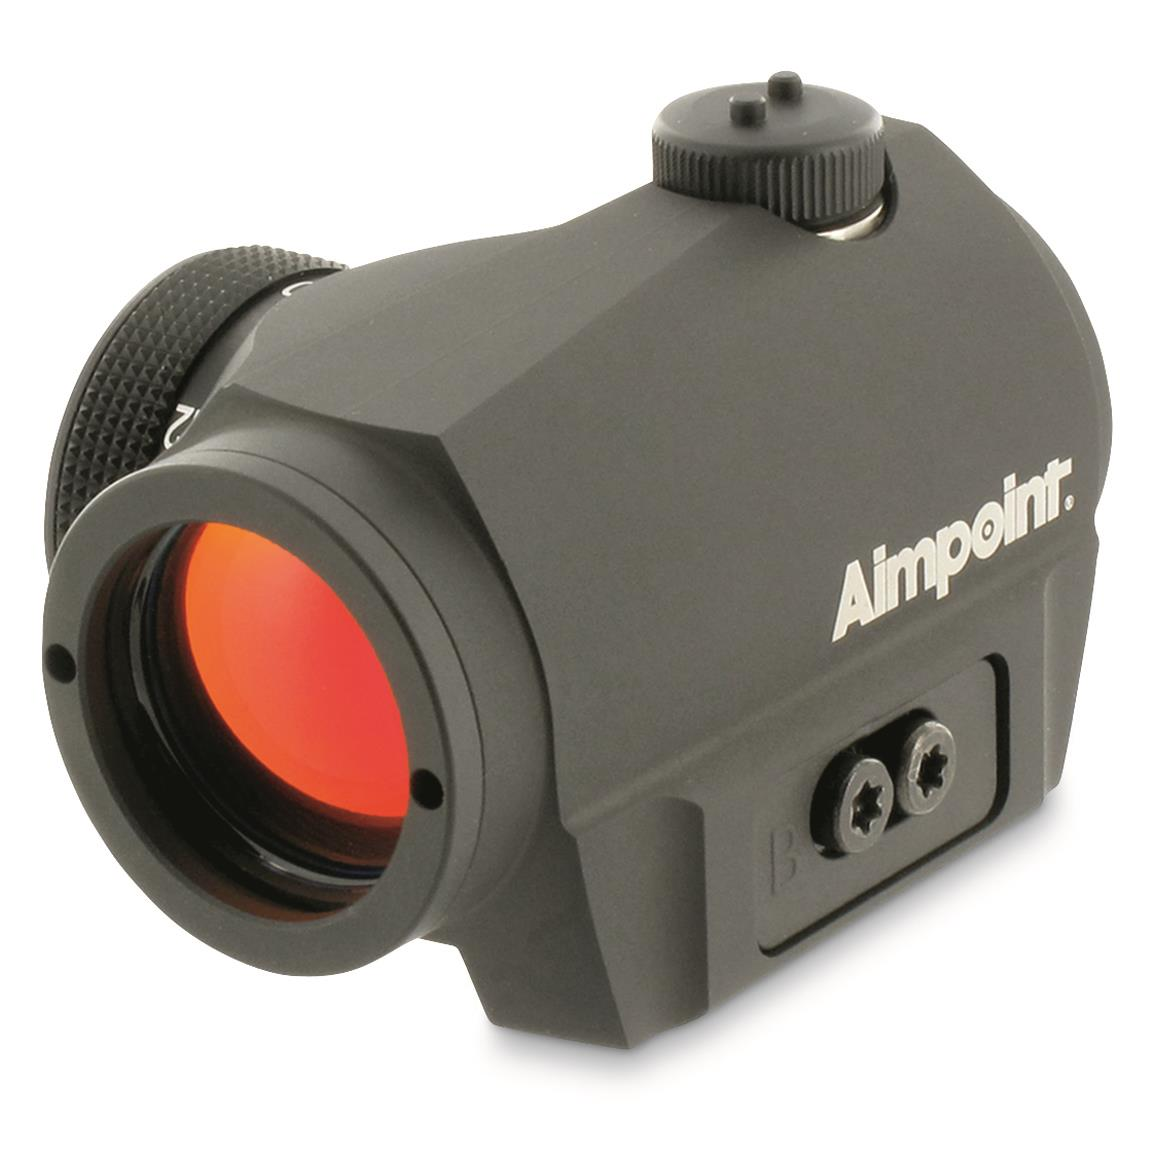 AIimpoint Micro S-1 Red Dot Sight